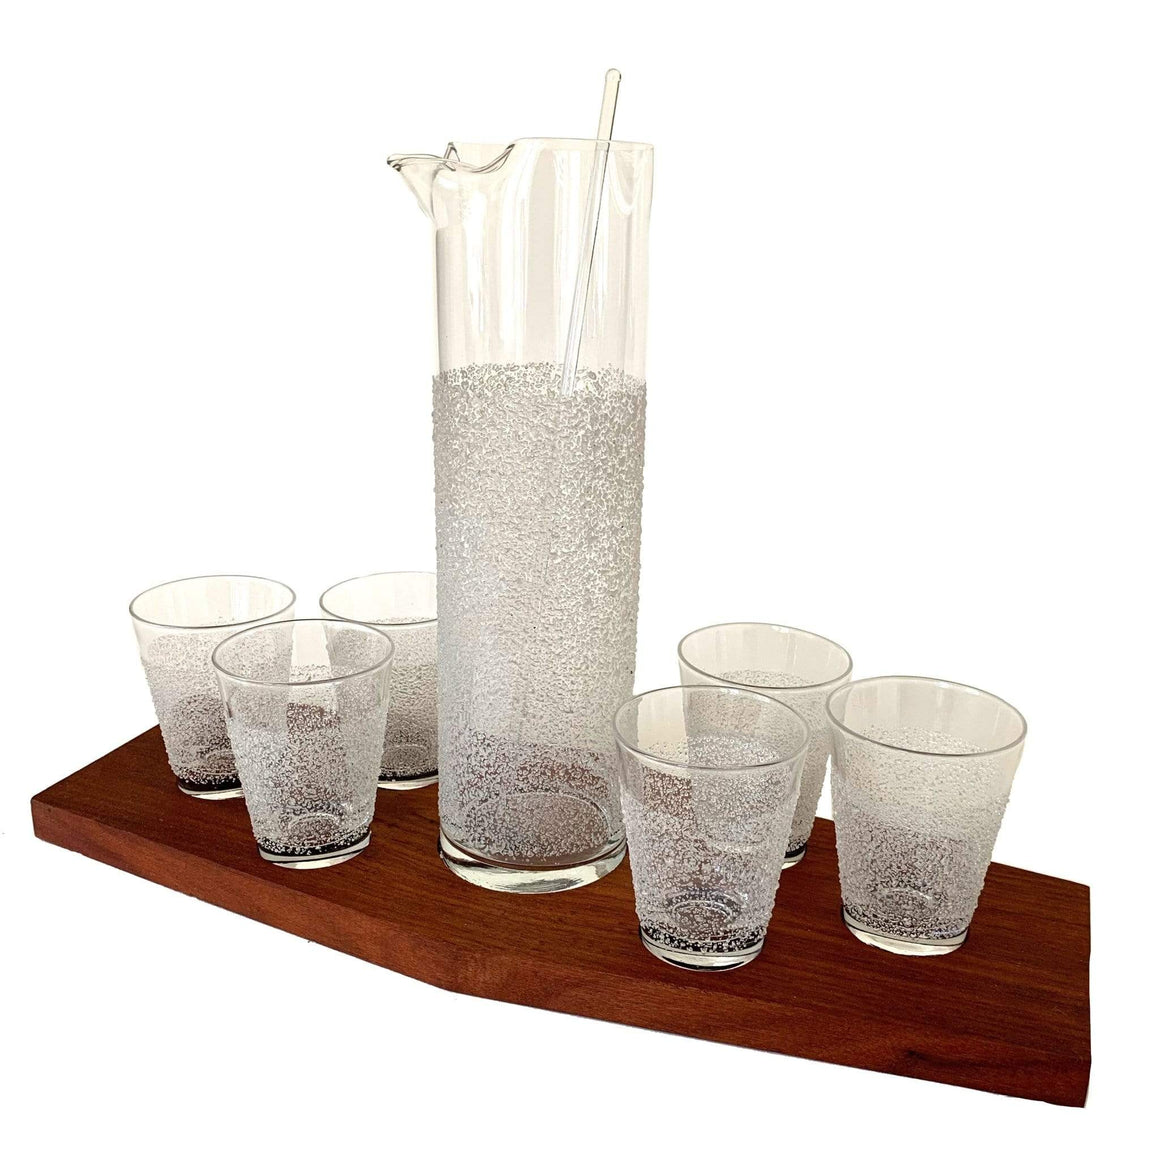 kristina iulo | a private vintage collection Bar & Kitchenware Vintage Mid-Century Modern Frosty Water Droplet Textured Cocktail Glass Pitcher Walnut Tray